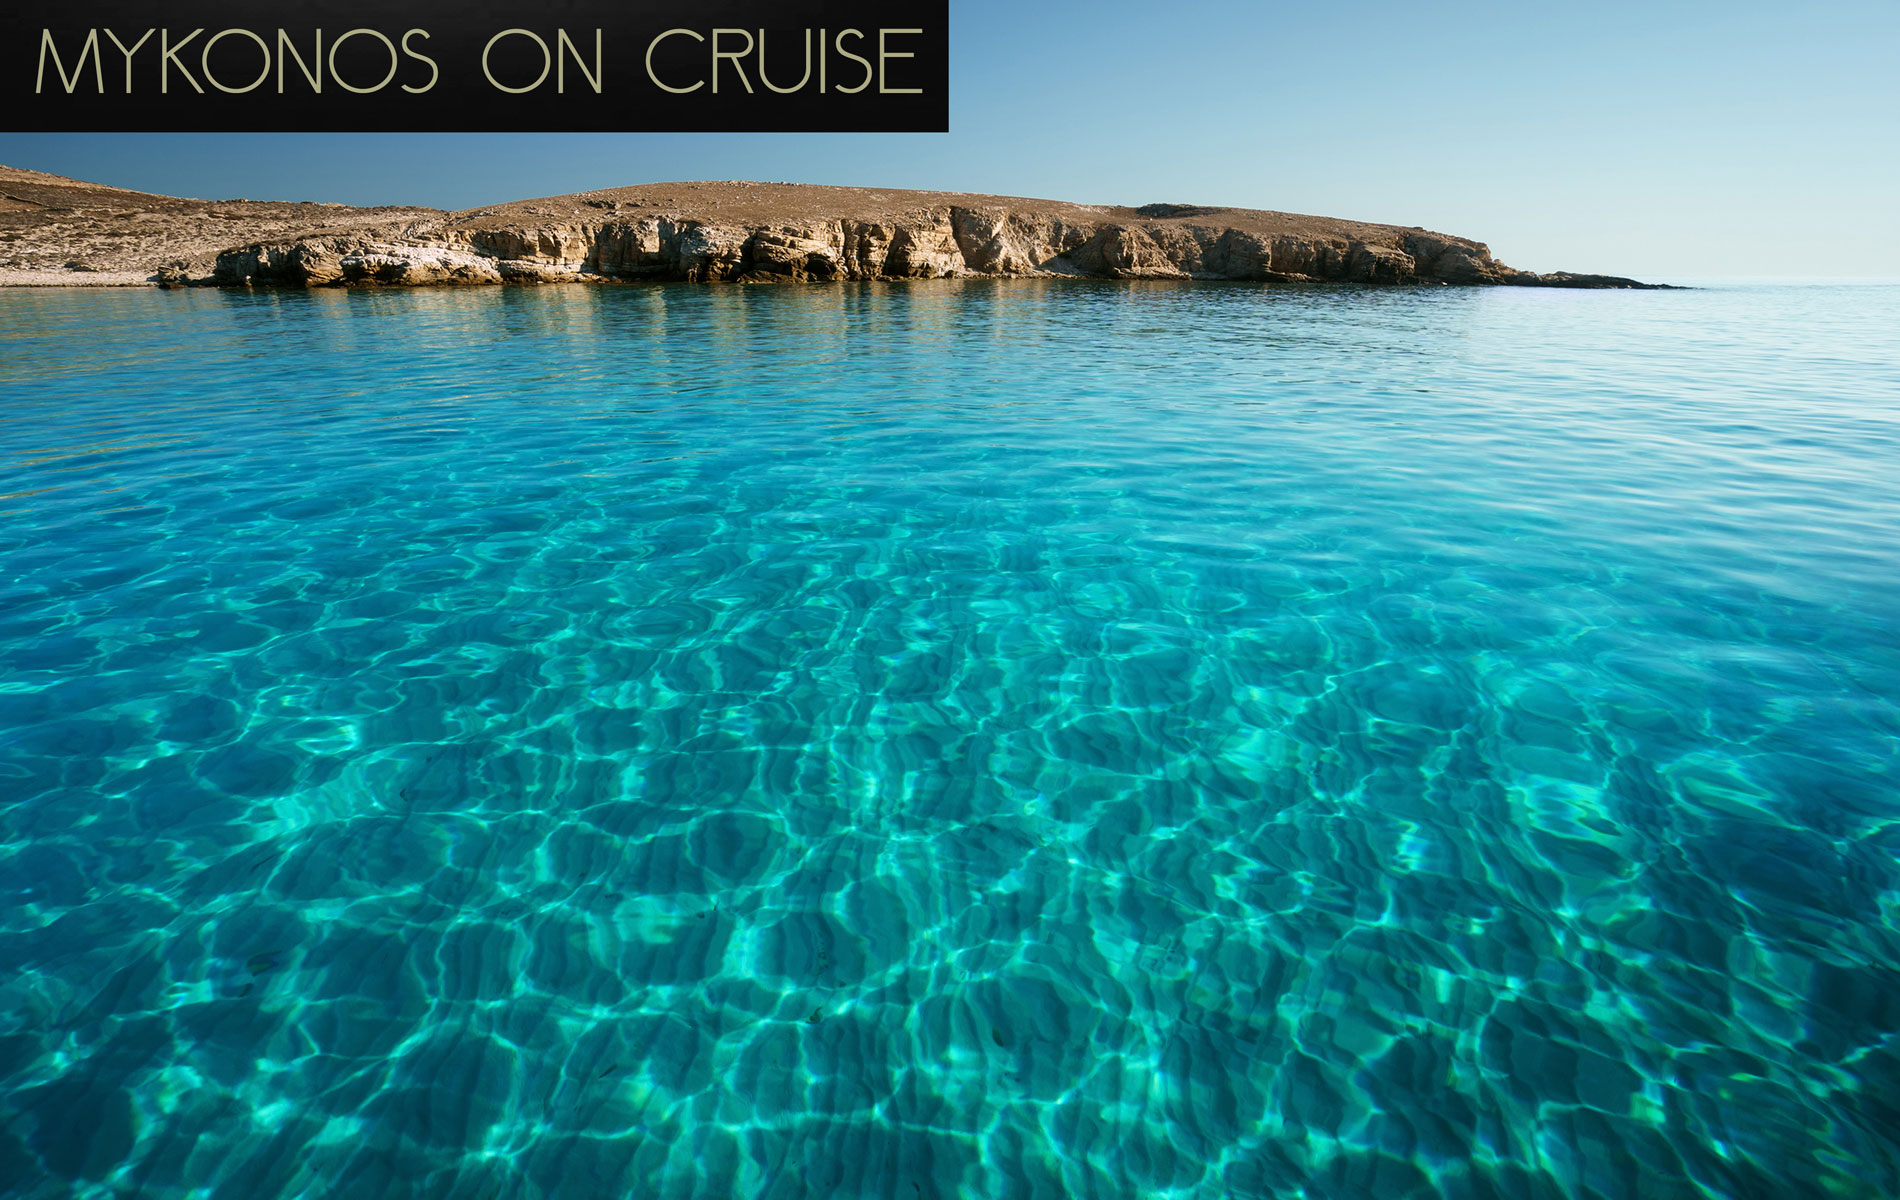 mykonos on cruise - yacht charters, speed boat rentals and daily cruises in Mykonos